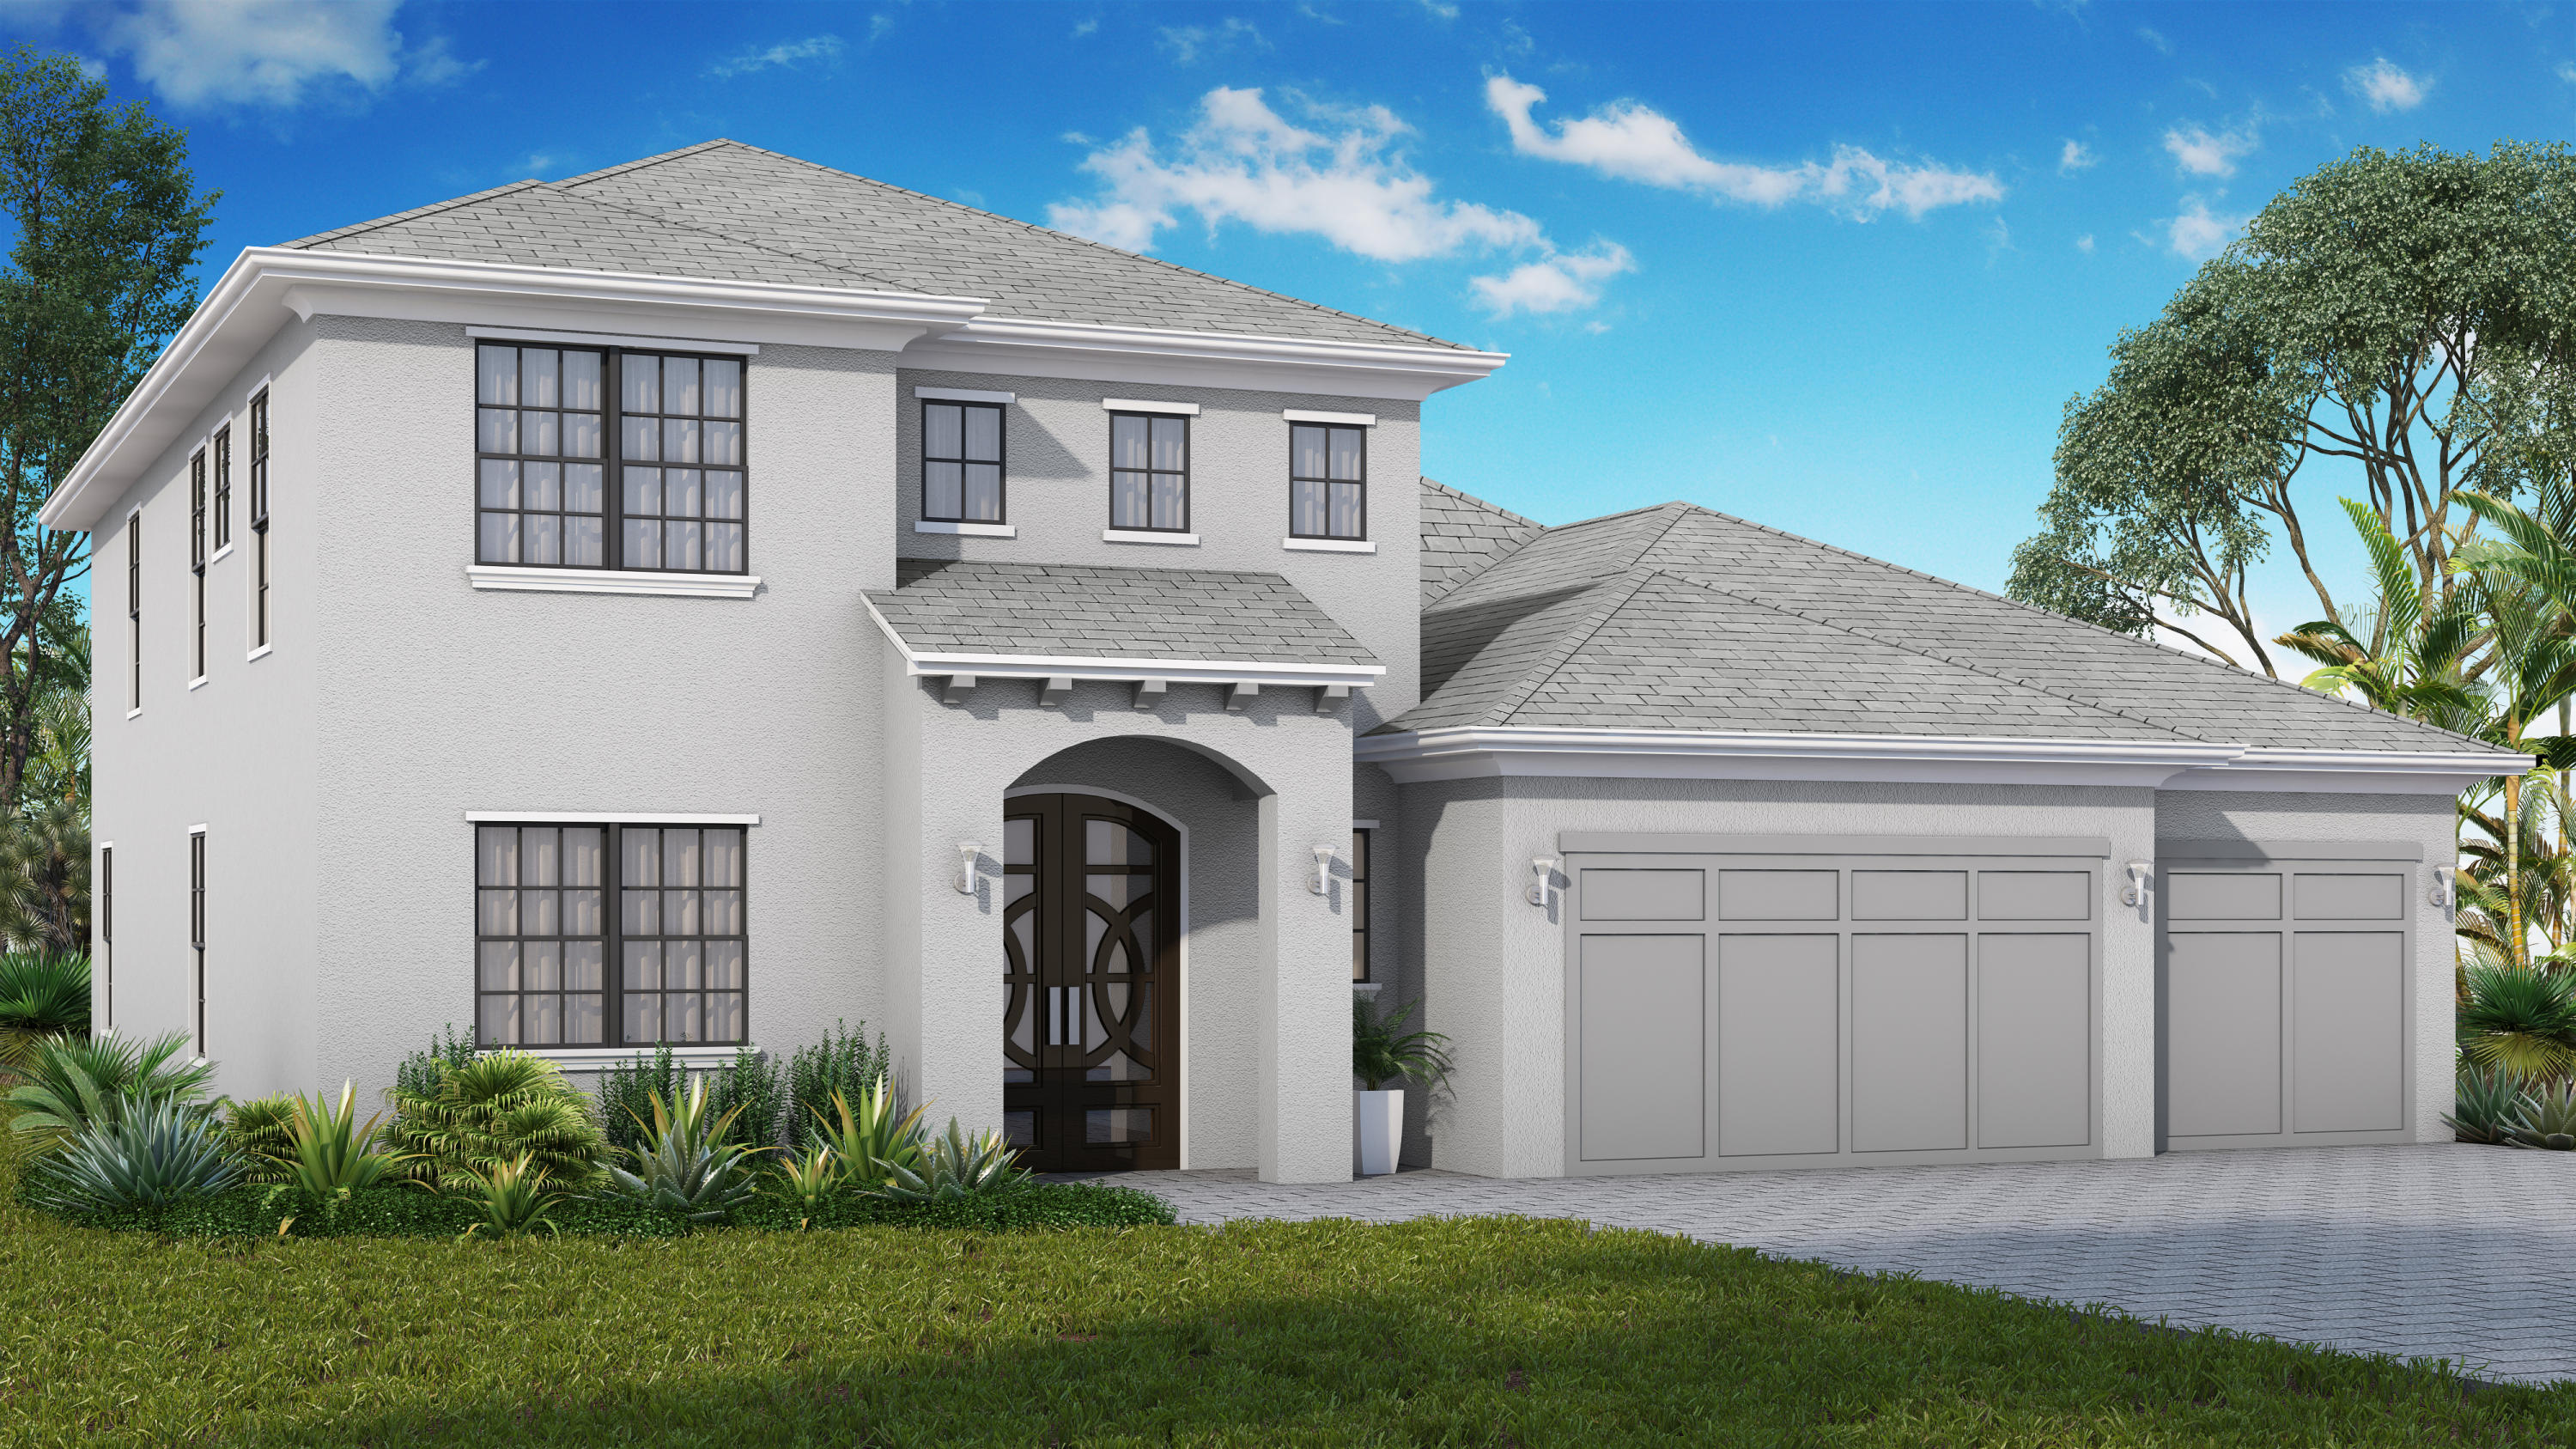 Home for sale in Lake Ida Delray Beach Florida